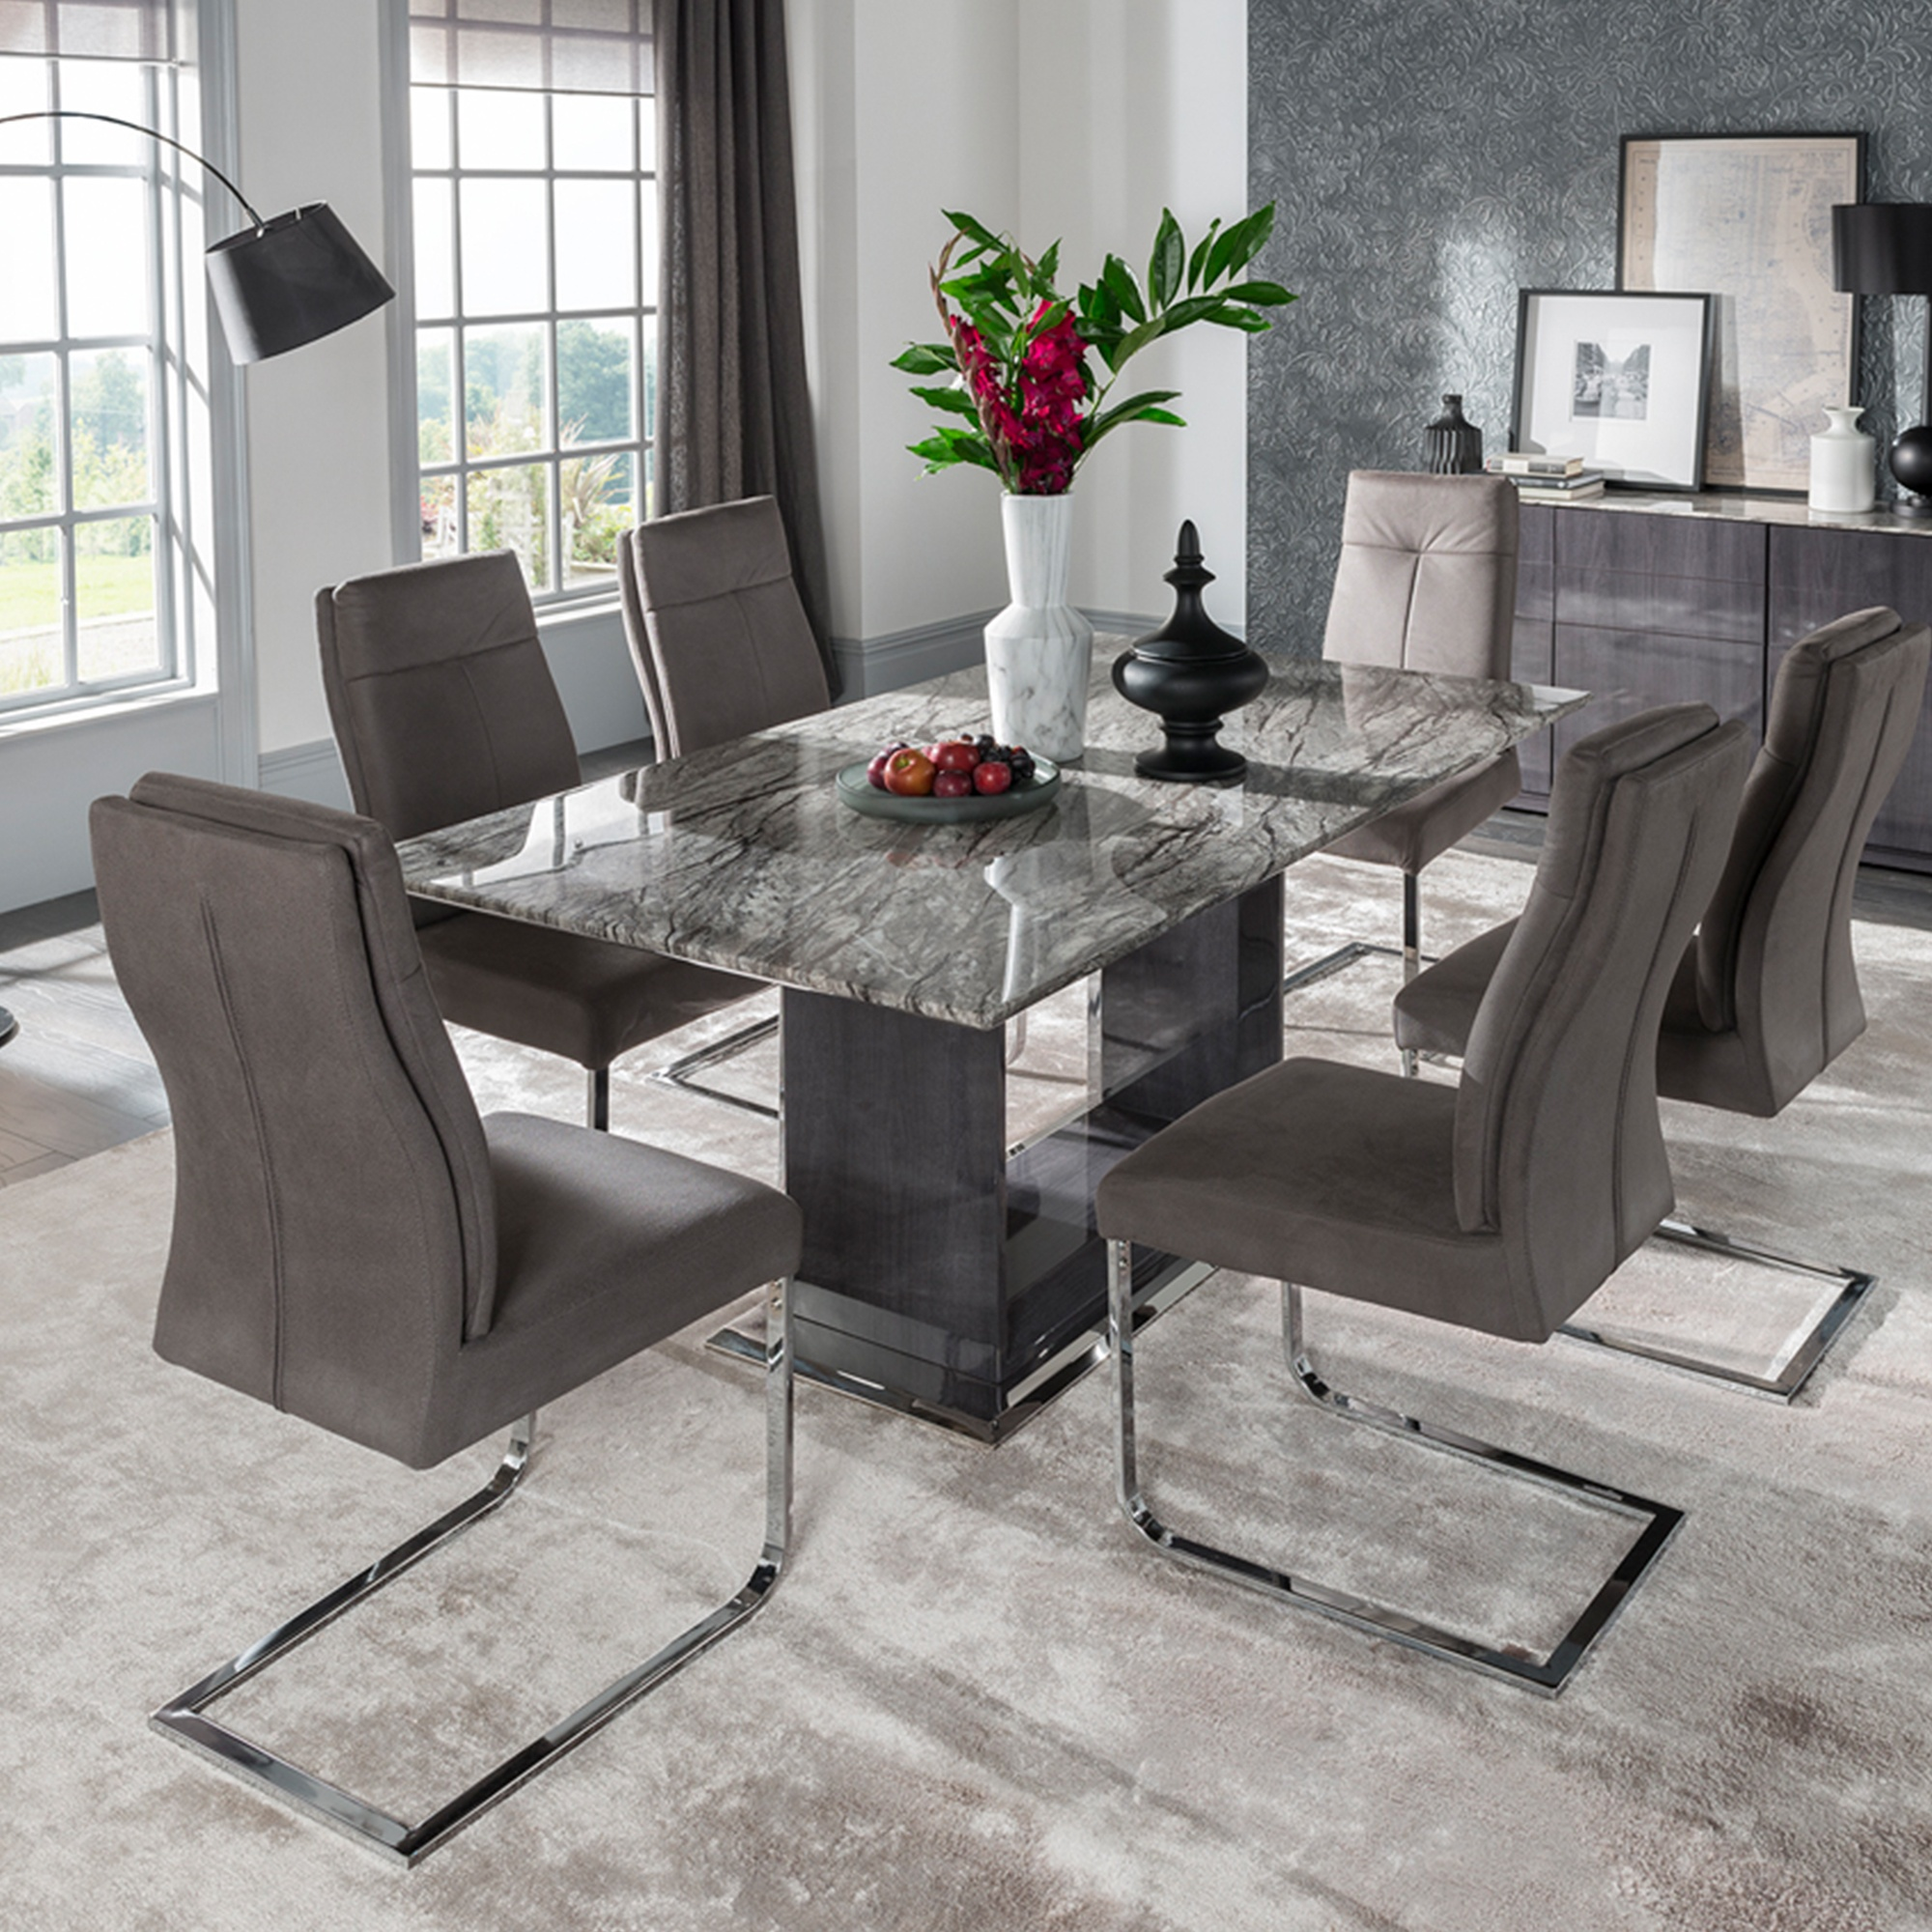 Marco Dining Table And 6 Chairs Dining Sets